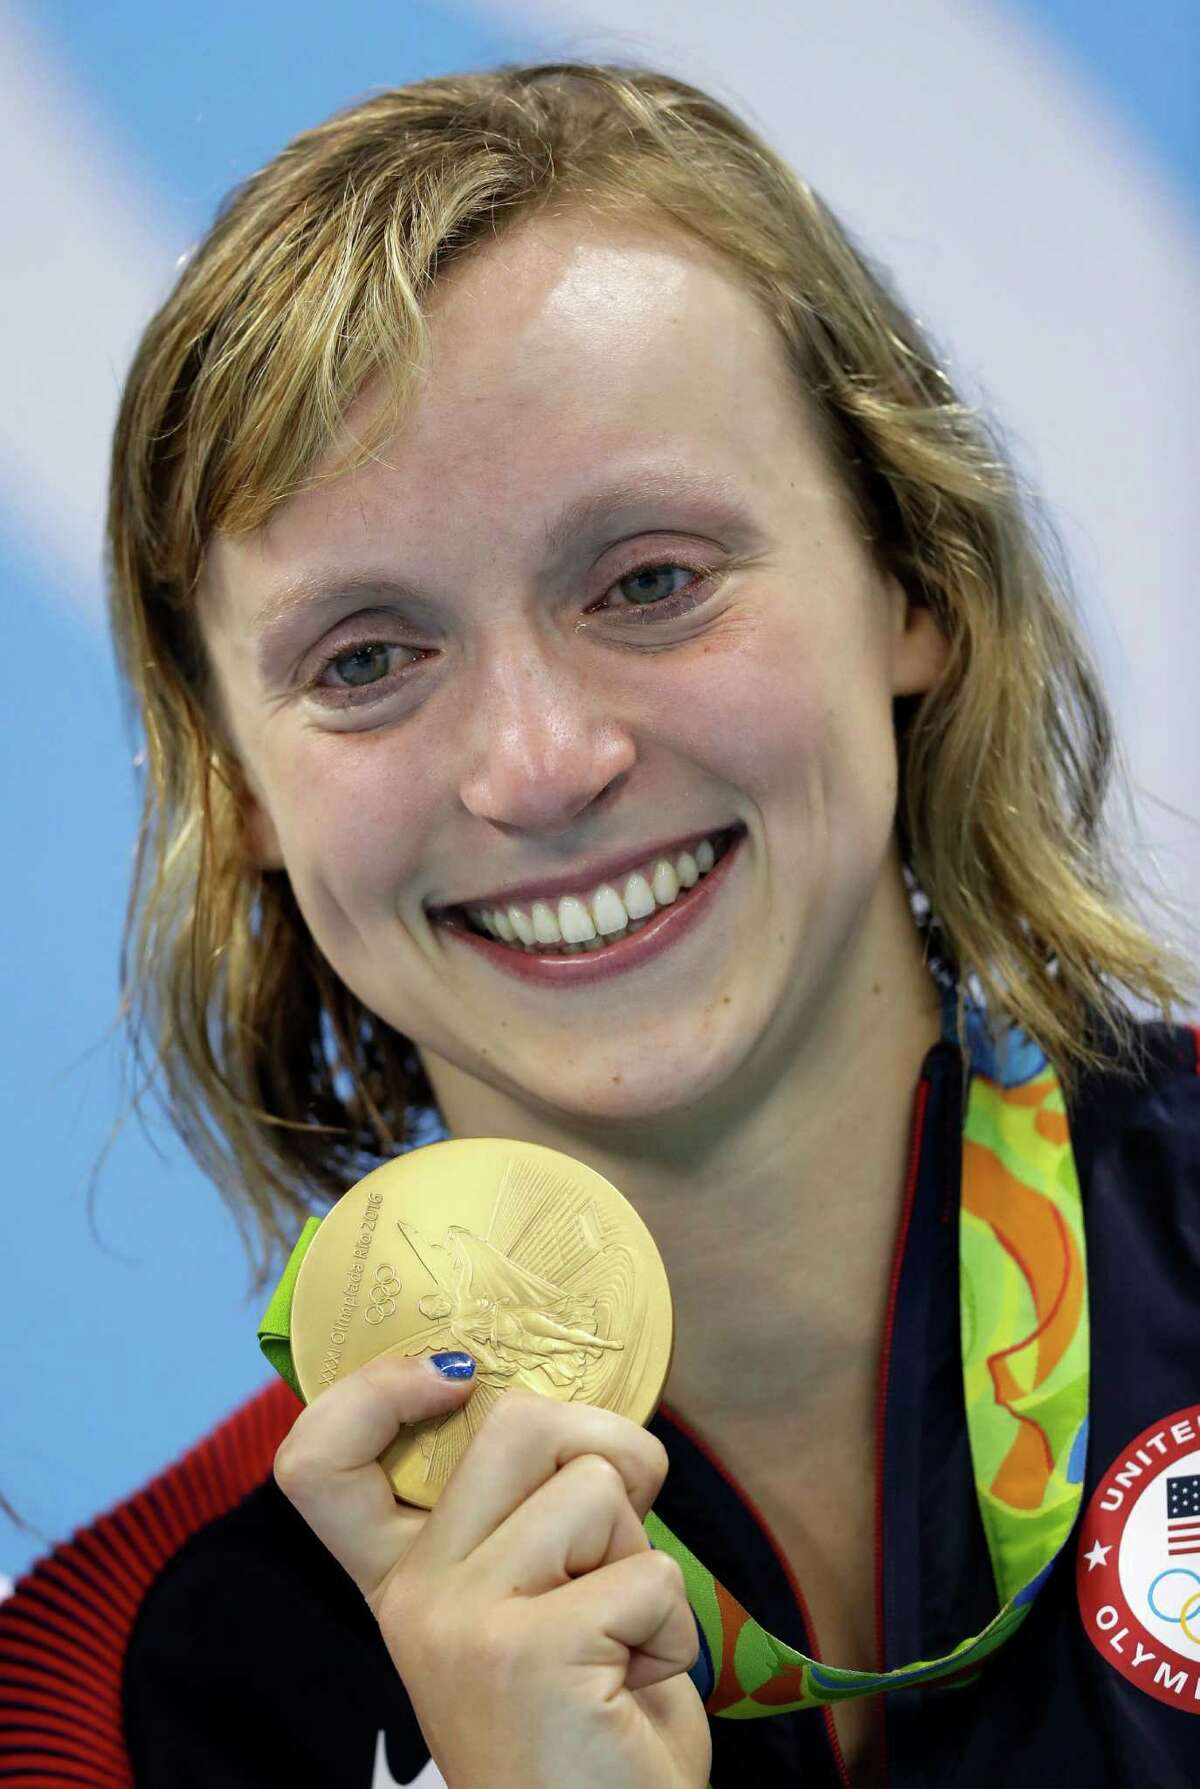 United States' Katie Ledecky, cries after winning gold, in the women's 800-meter freestyle medals ceremony during the swimming competitions at the 2016 Summer Olympics, Friday, Aug. 12, 2016, in Rio de Janeiro, Brazil. (AP Photo/Michael Sohn)